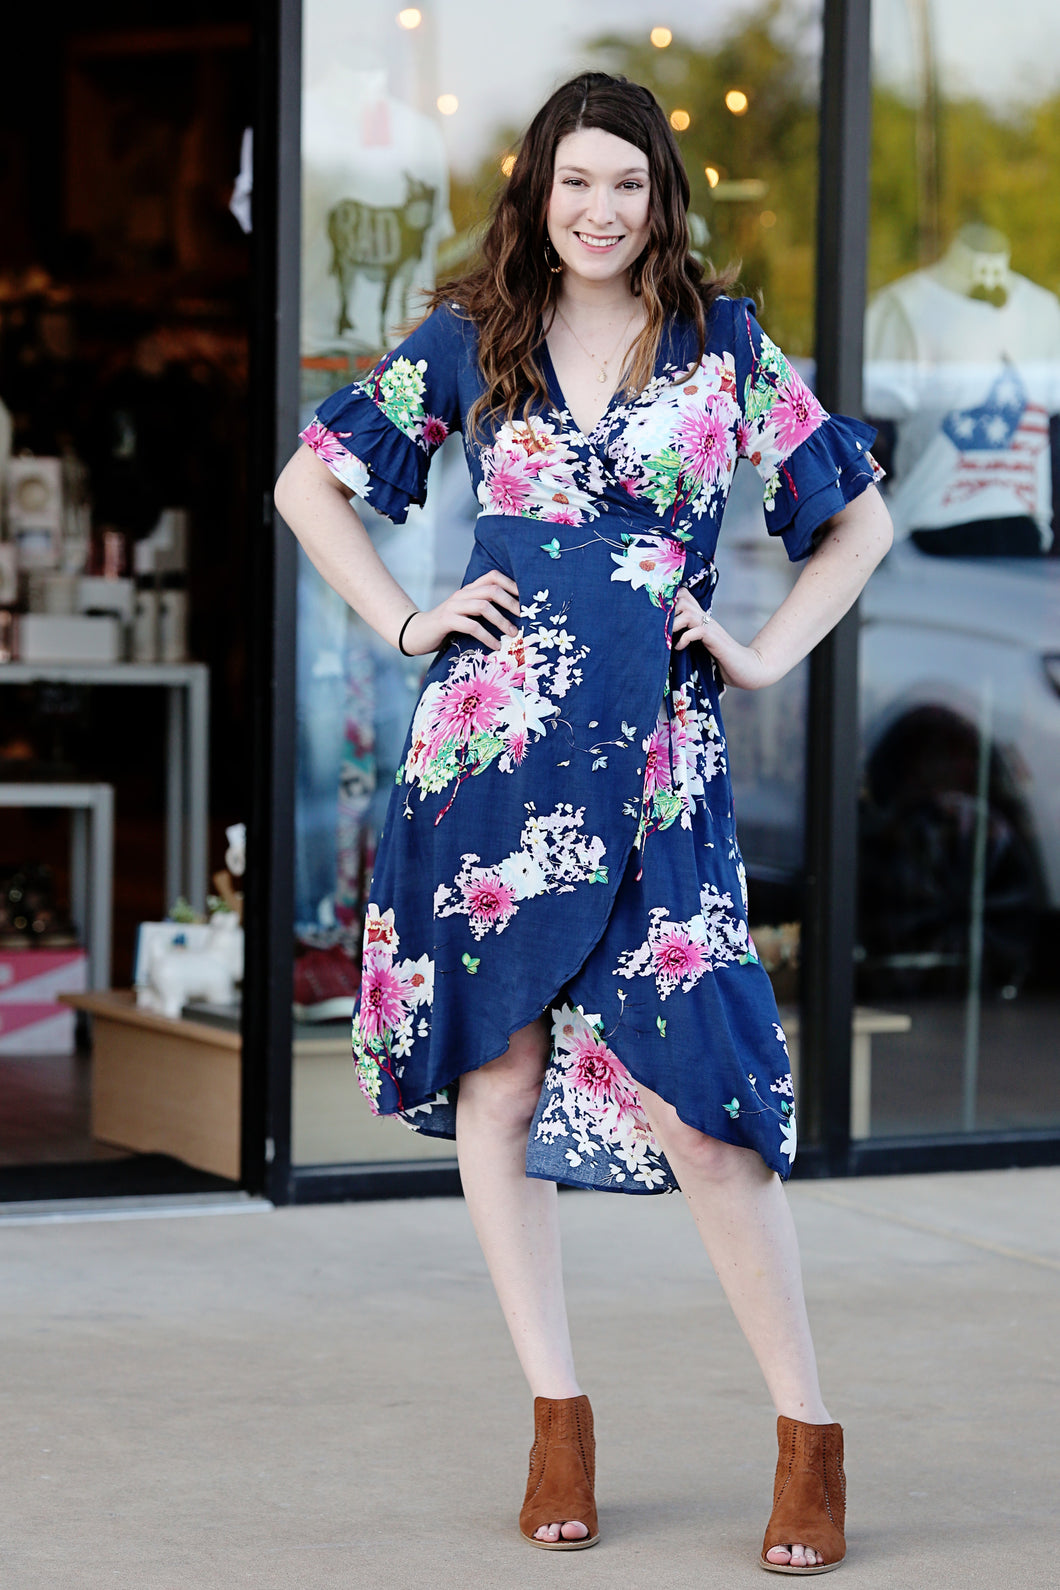 Garden Variety Wrap Dress - Moxie a sass + class boutique | Wichita, KS